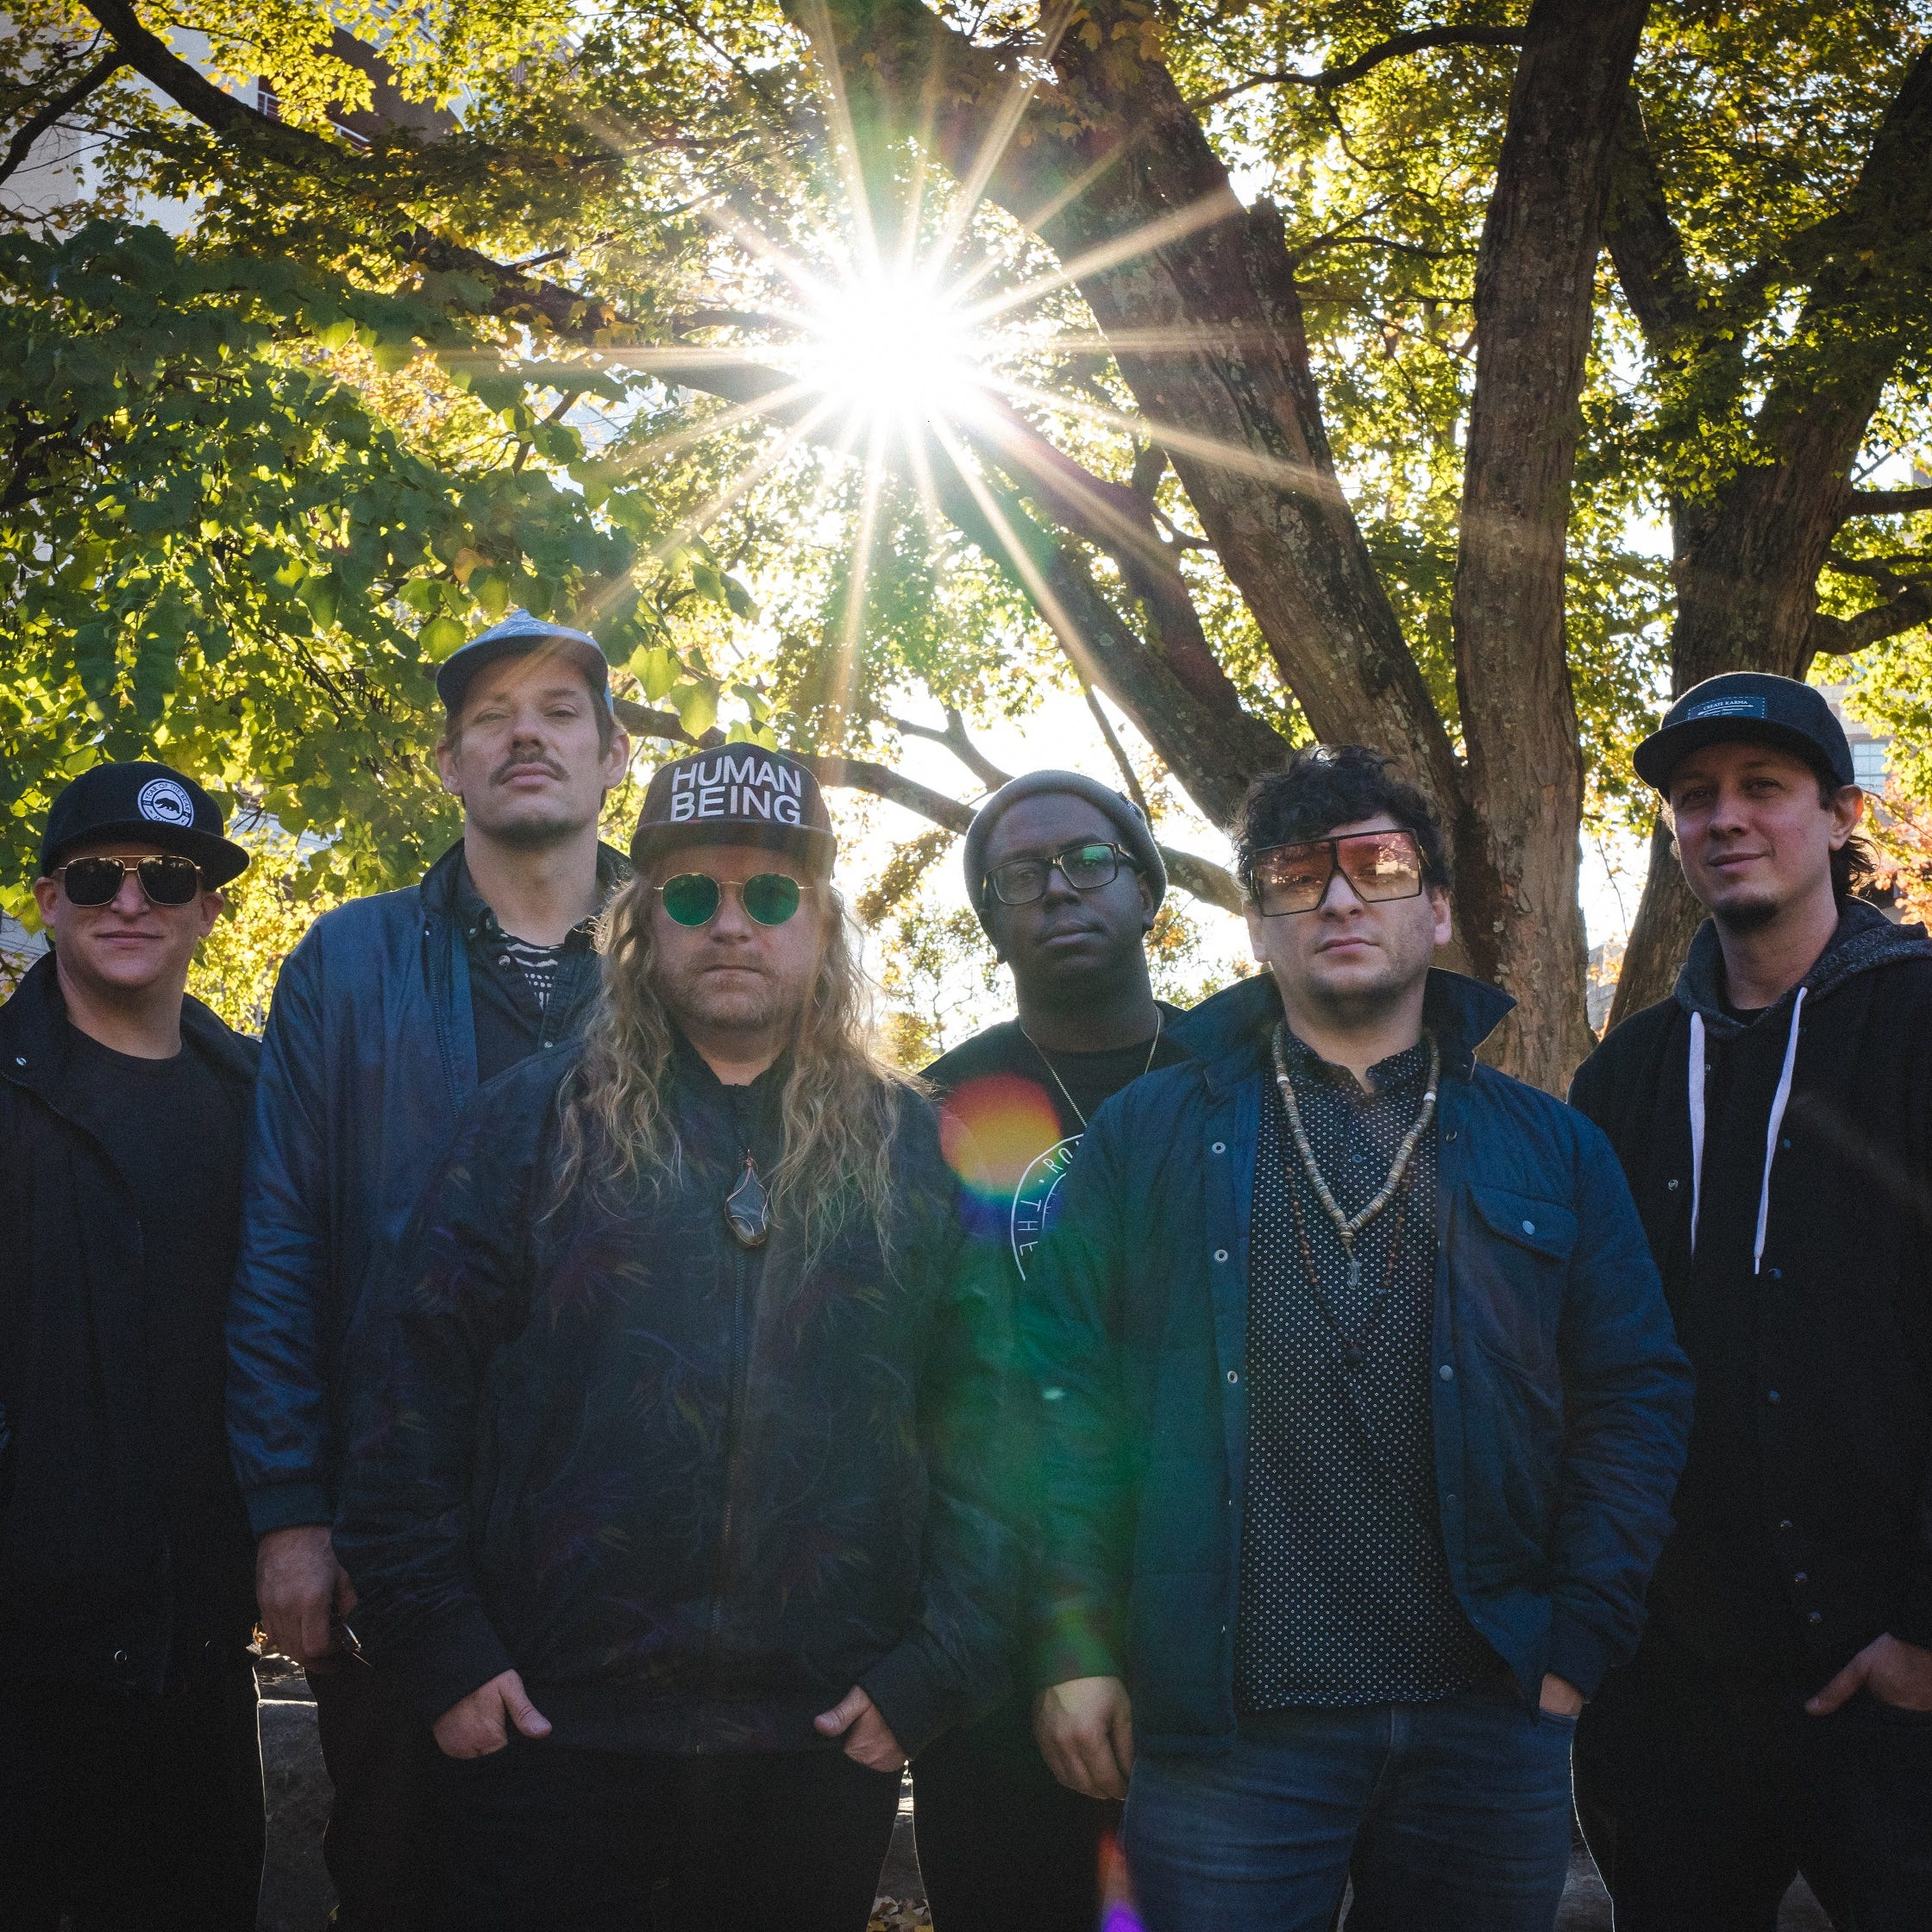 Lettuce on Grateful Dead, Miles Davis vibes and bringing funk to Asbury Park